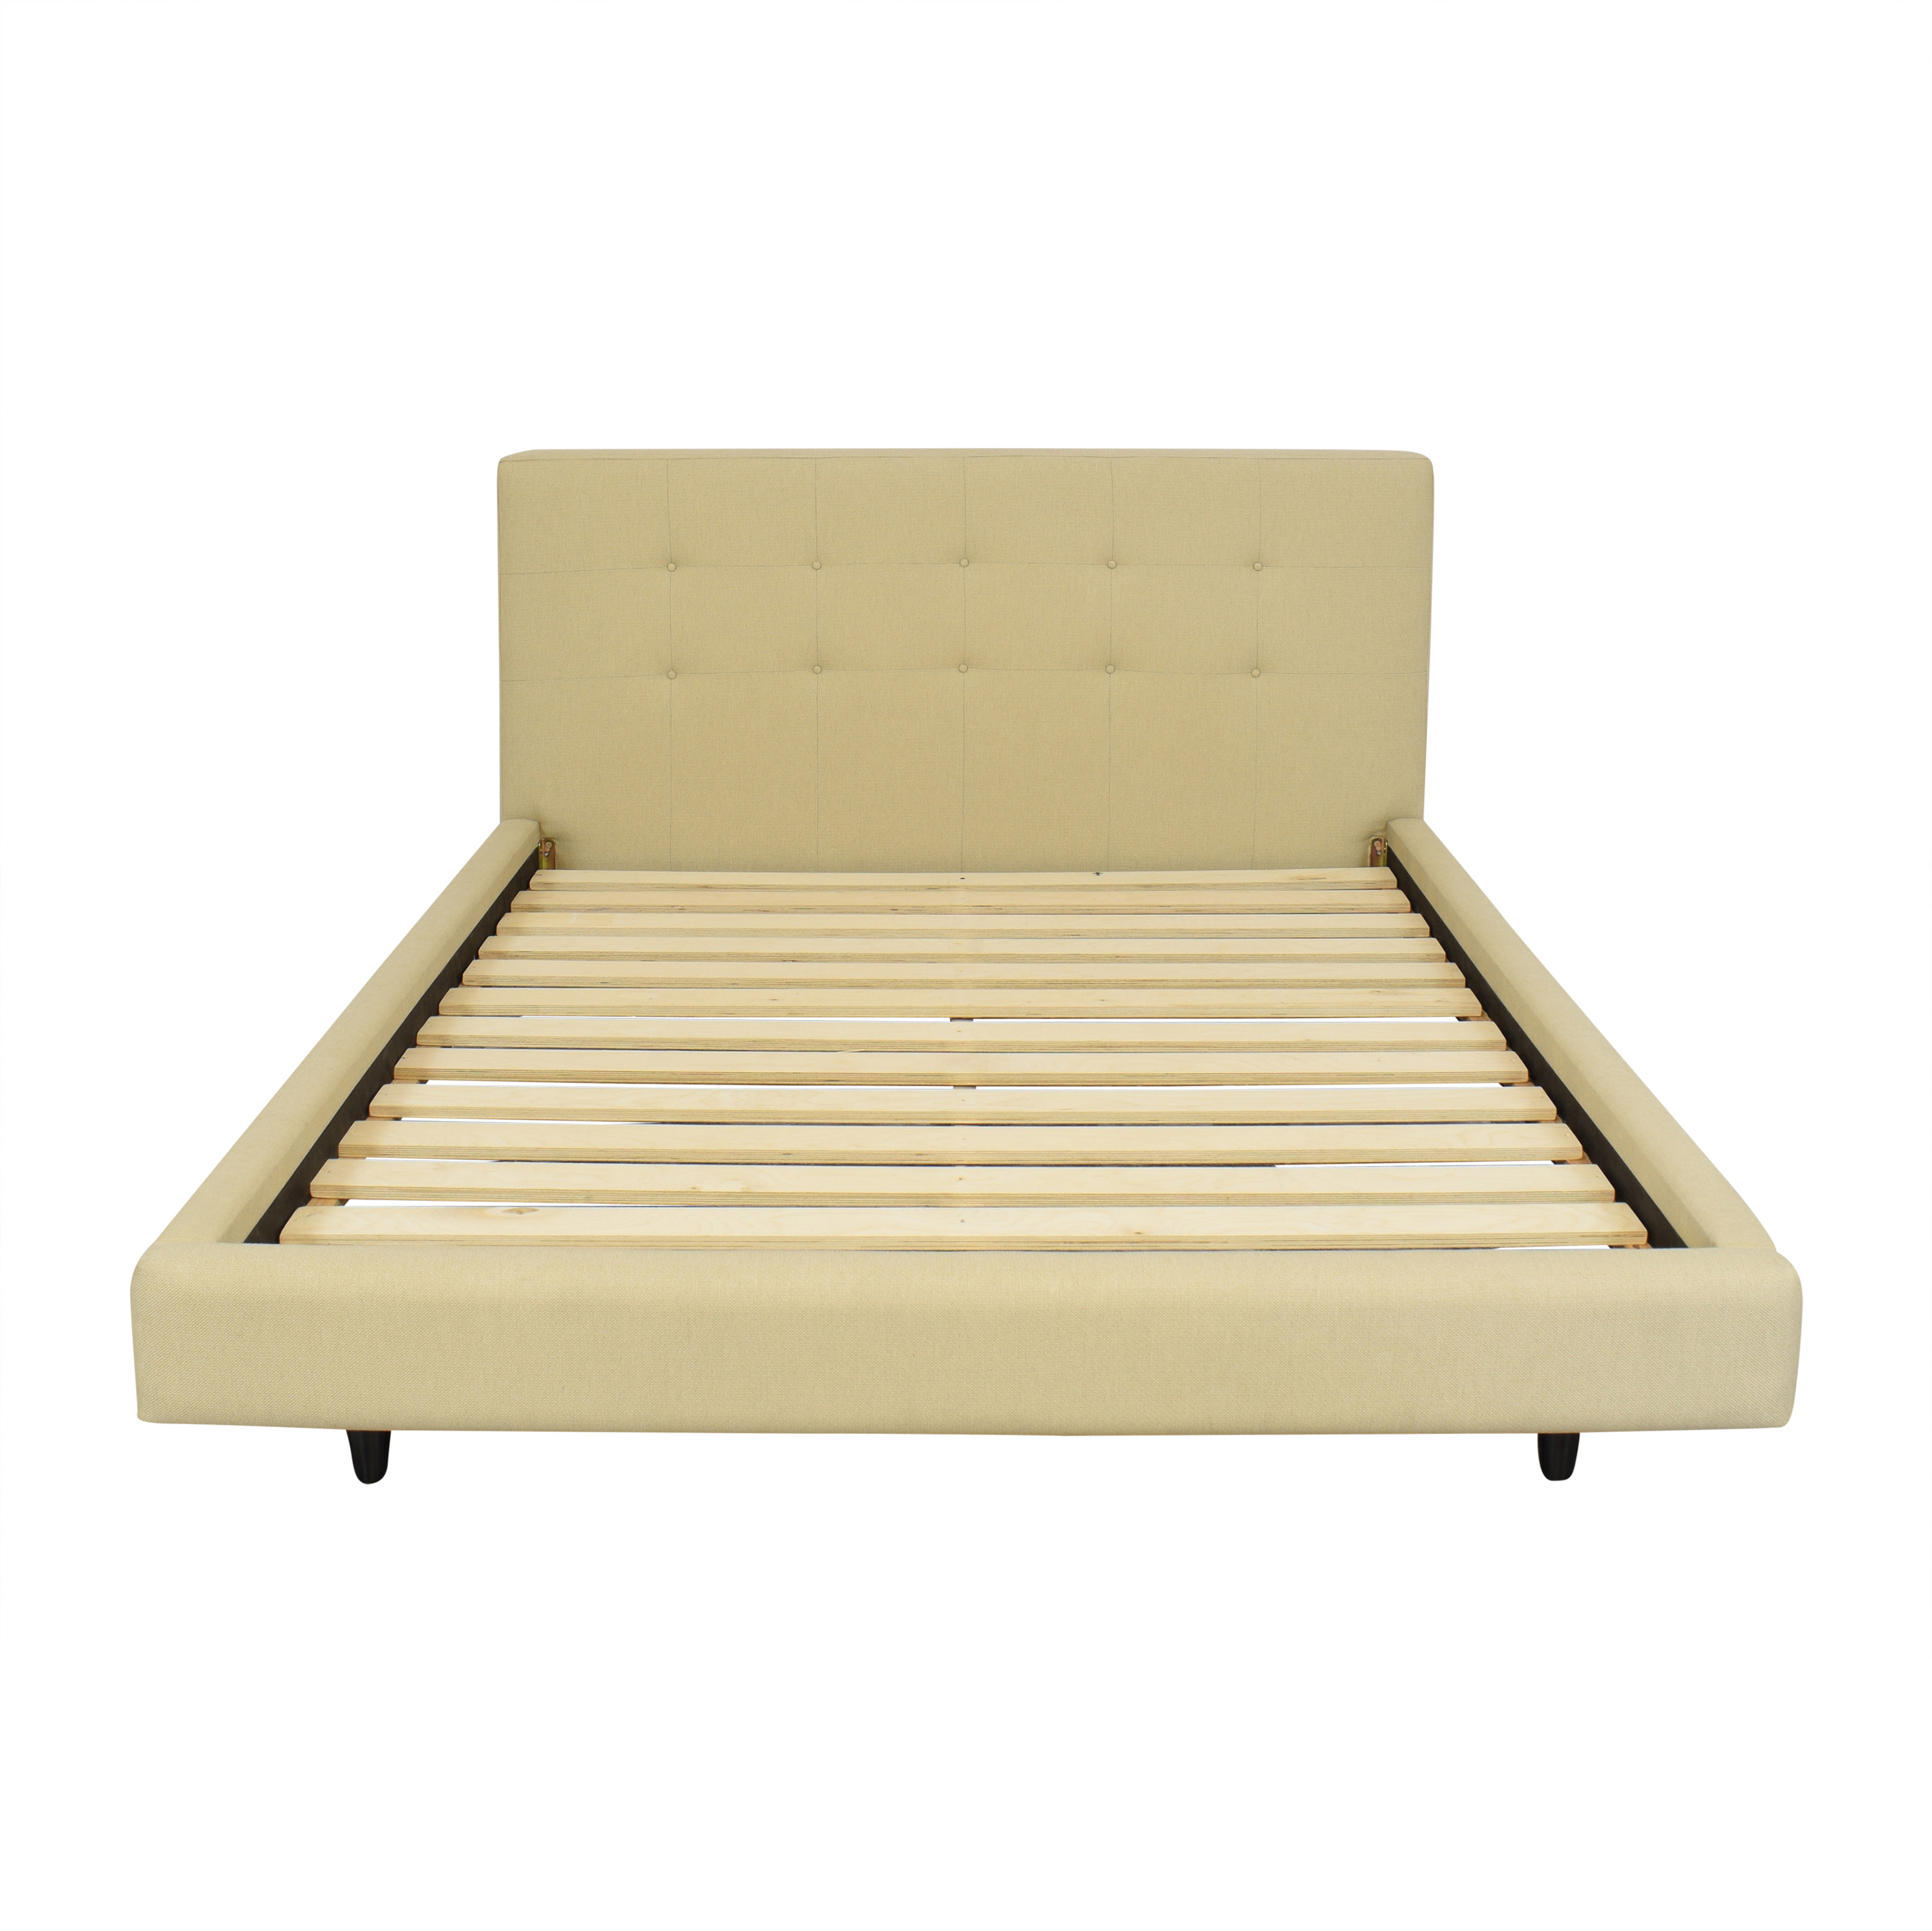 Crate & Barrel Tate Upholstered Queen Bed Crate & Barrel